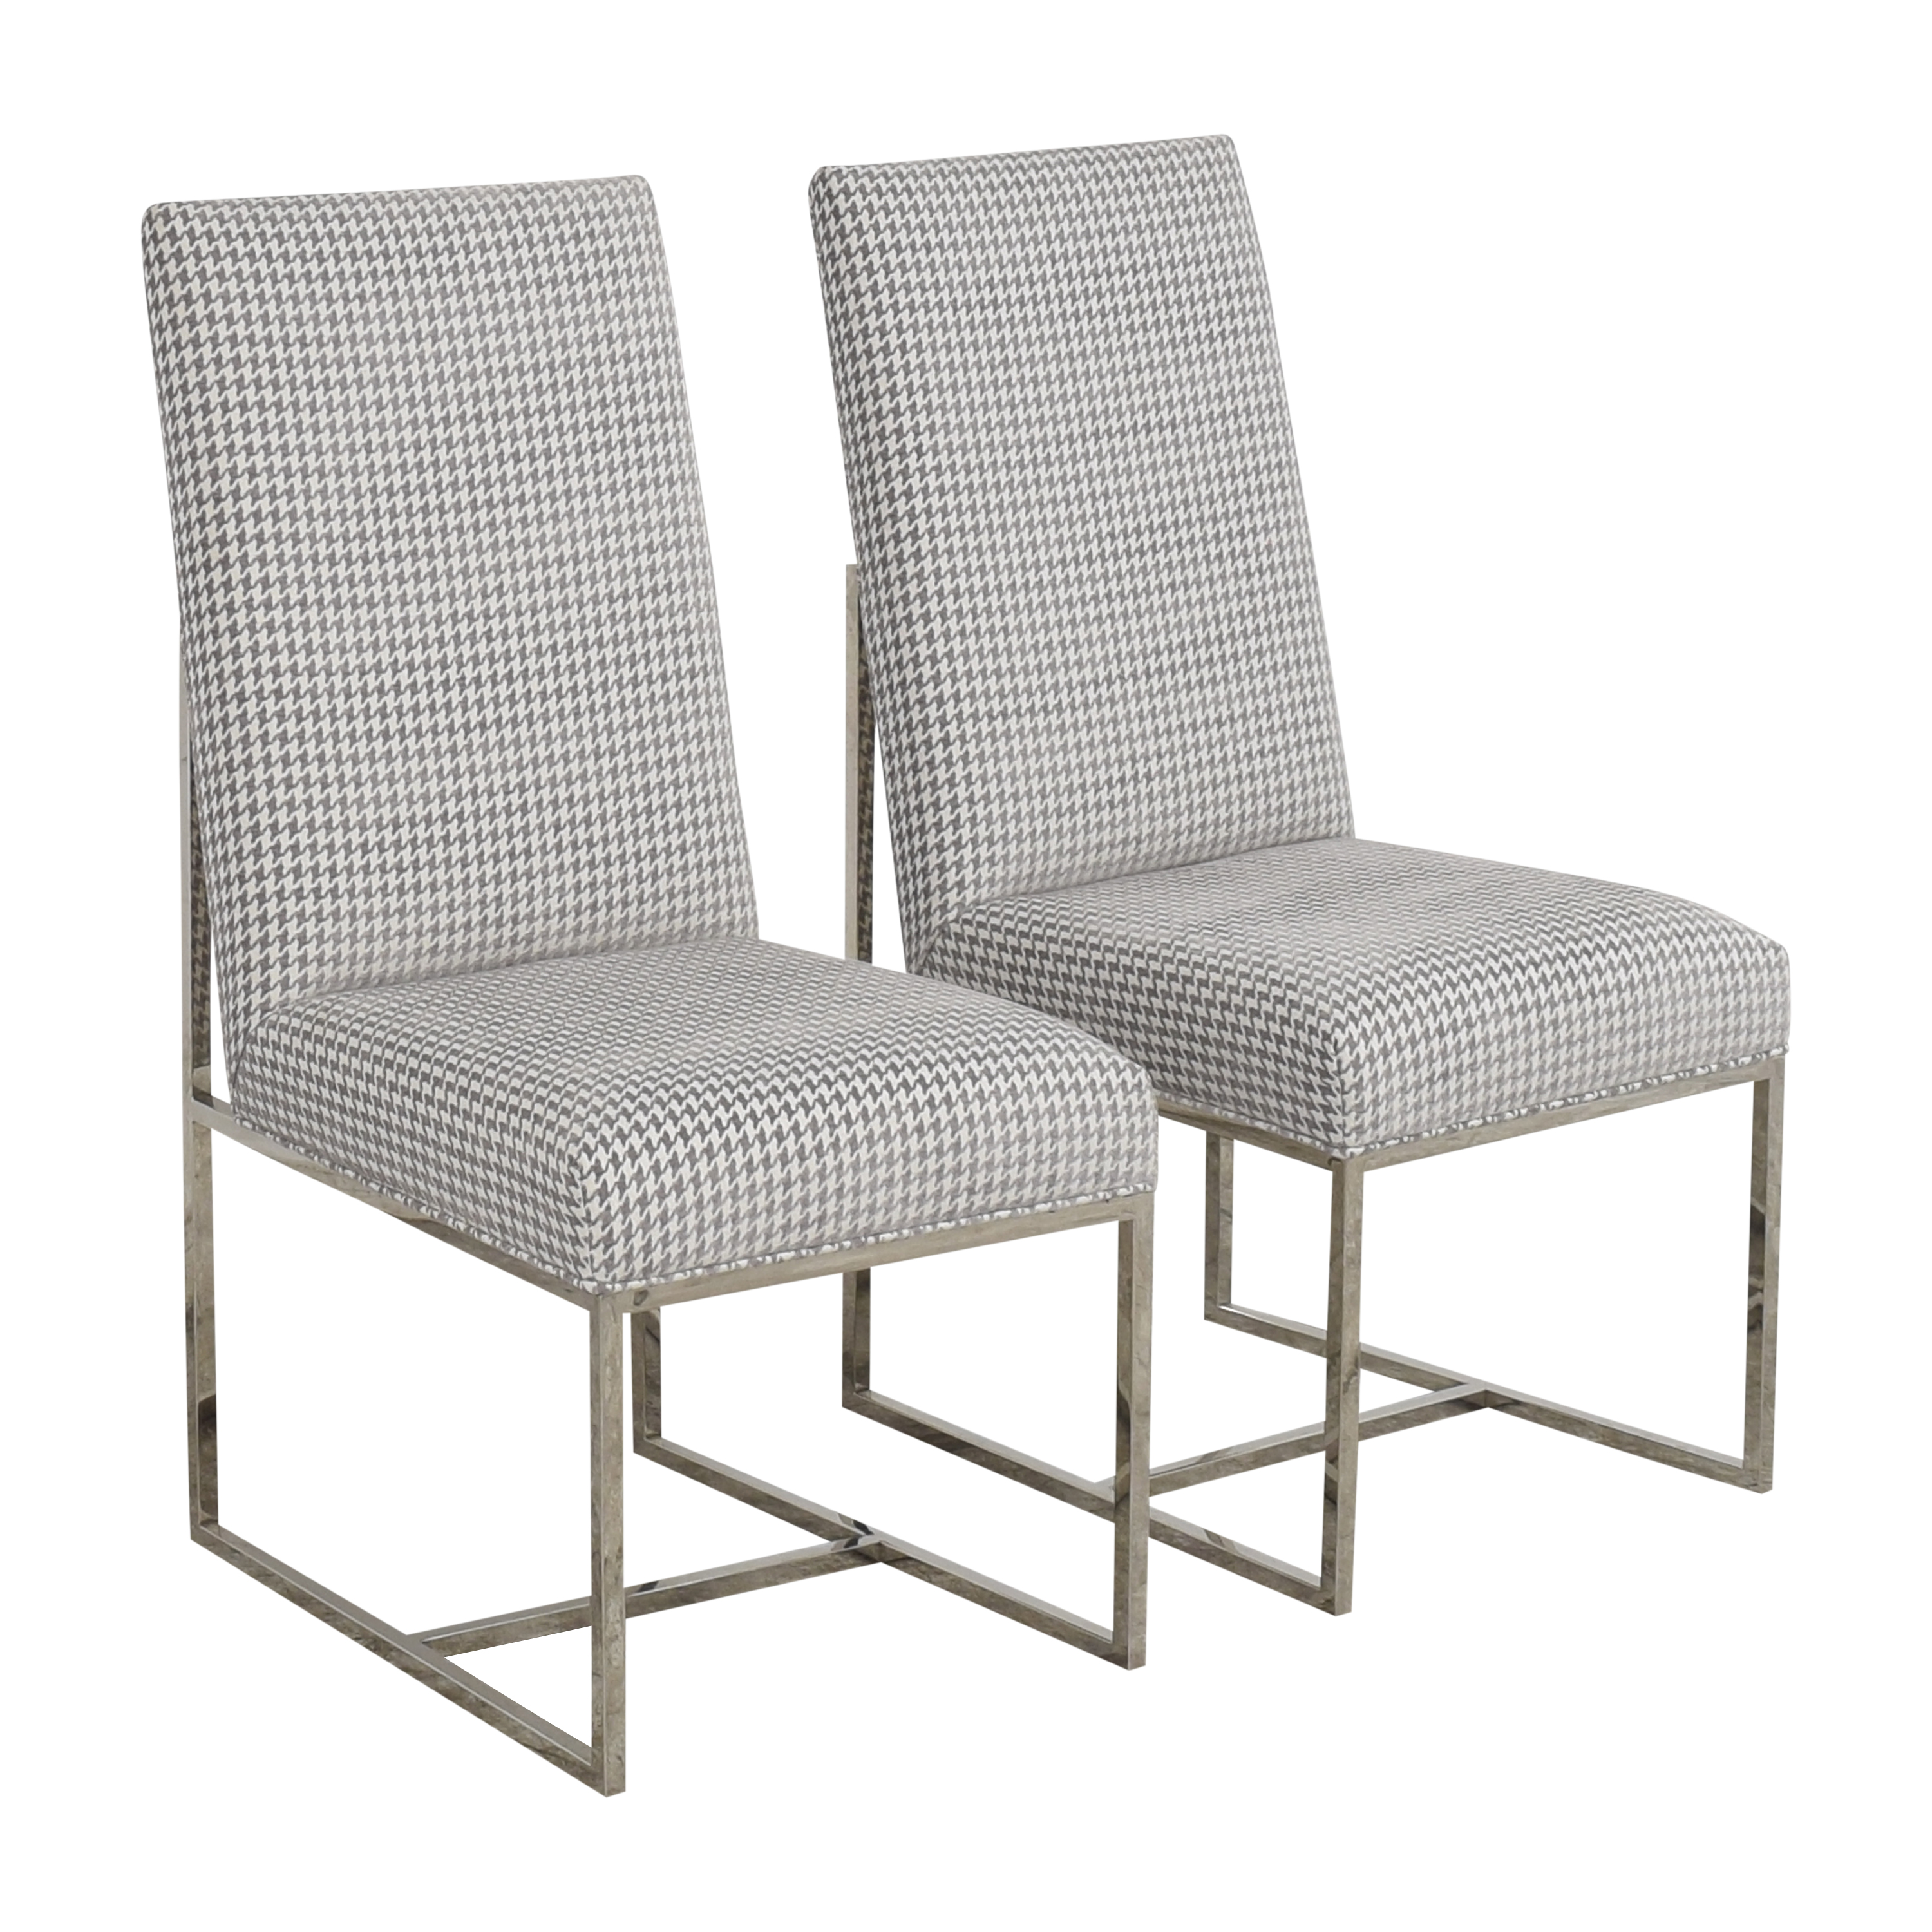 Mitchell Gold + Bob Williams Gage Tall Dining Chairs / Dining Chairs